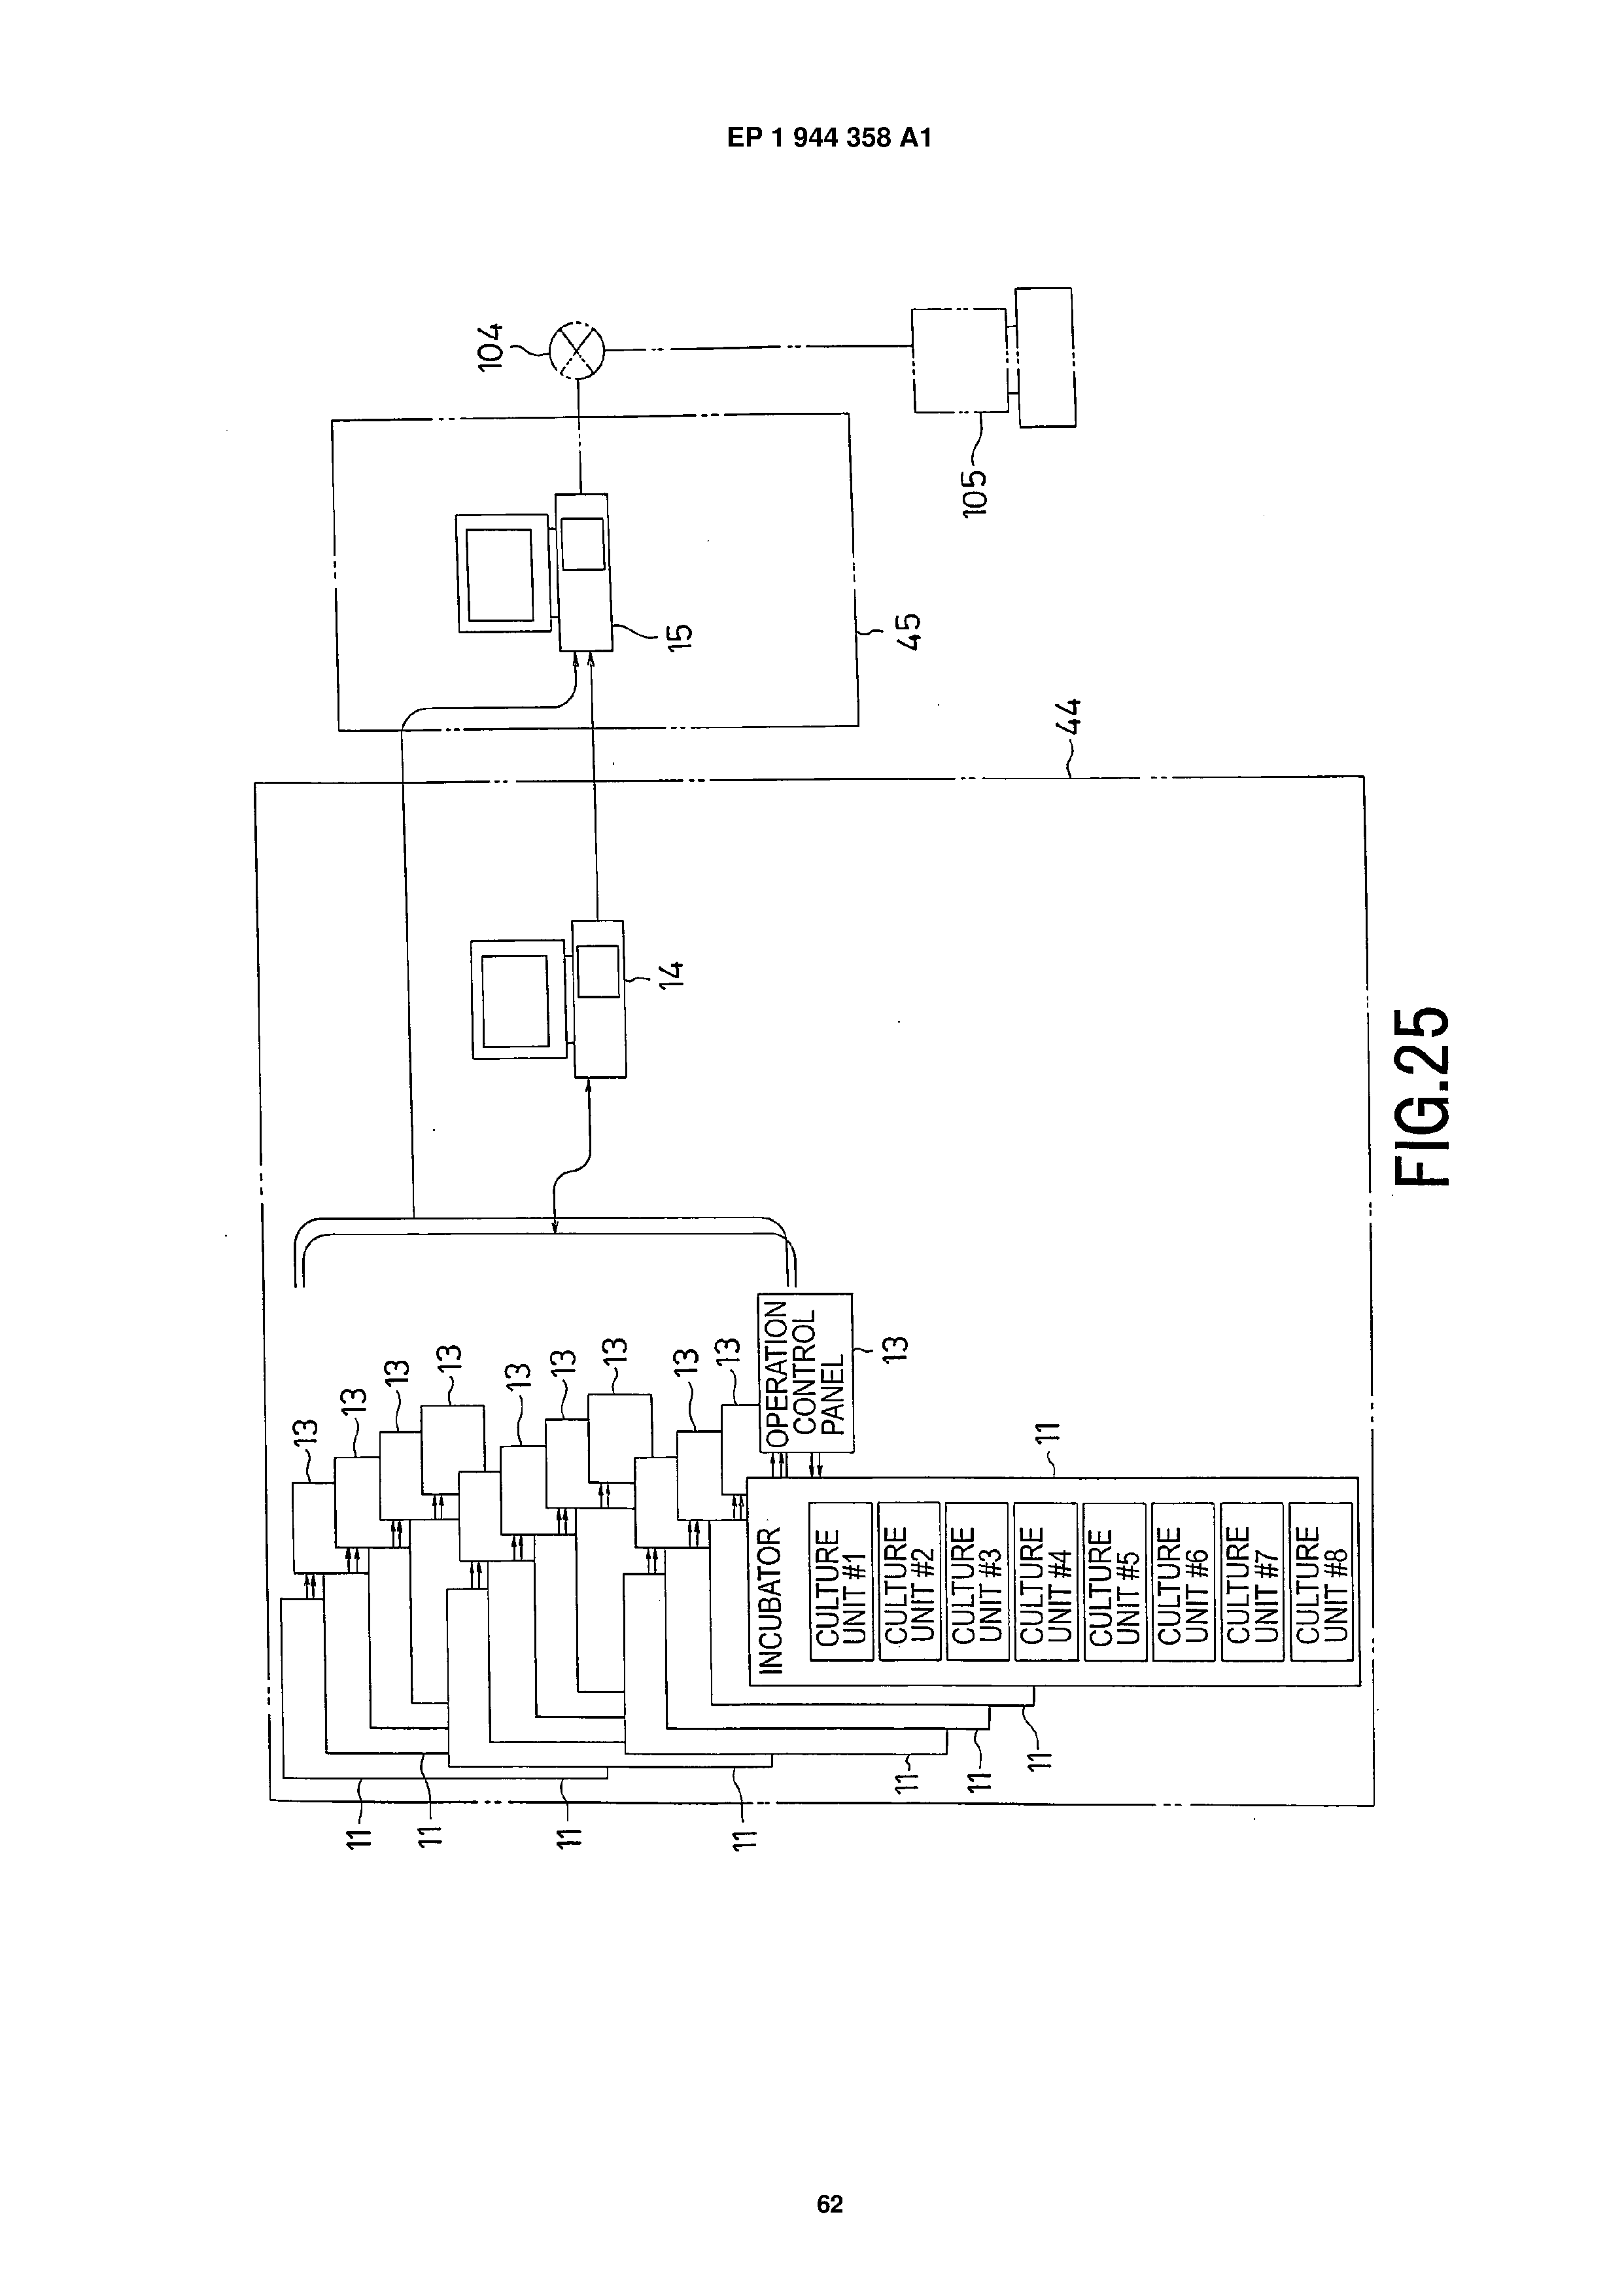 EP 1944358 A1 - Cell Culture Apparatus, Cell Culture Method